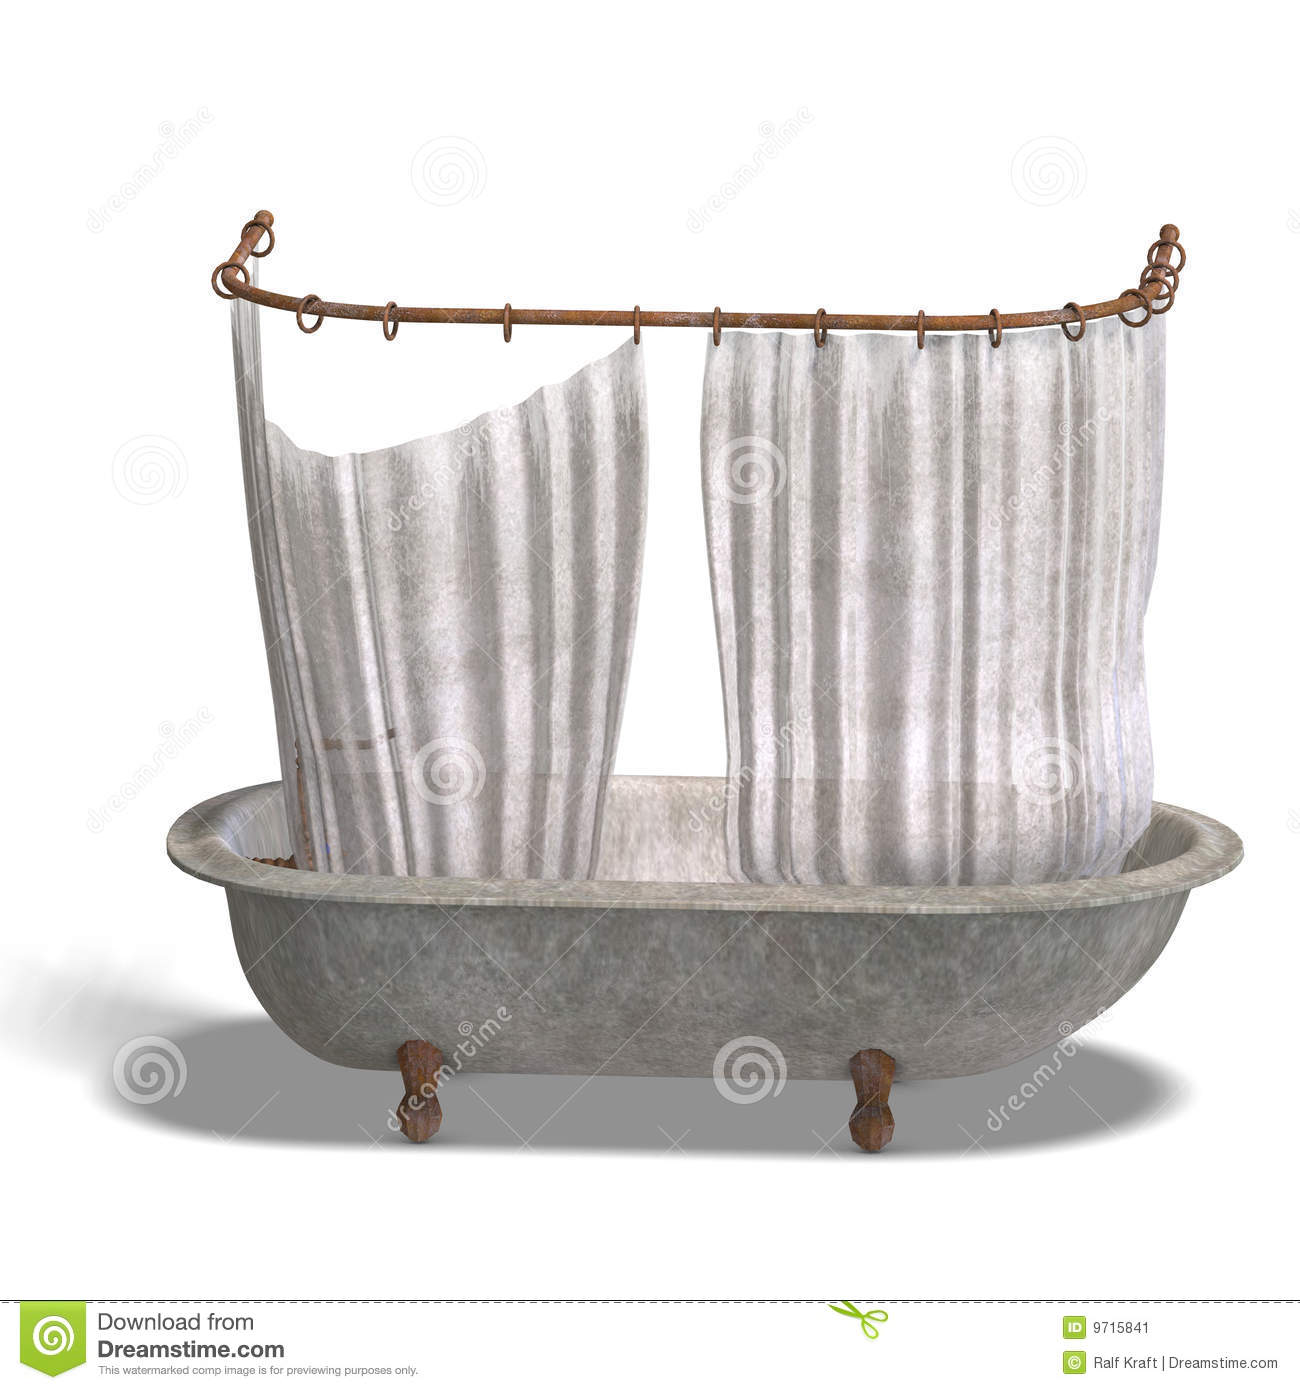 Dirty Bathtube With Shower Curtain Stock Image